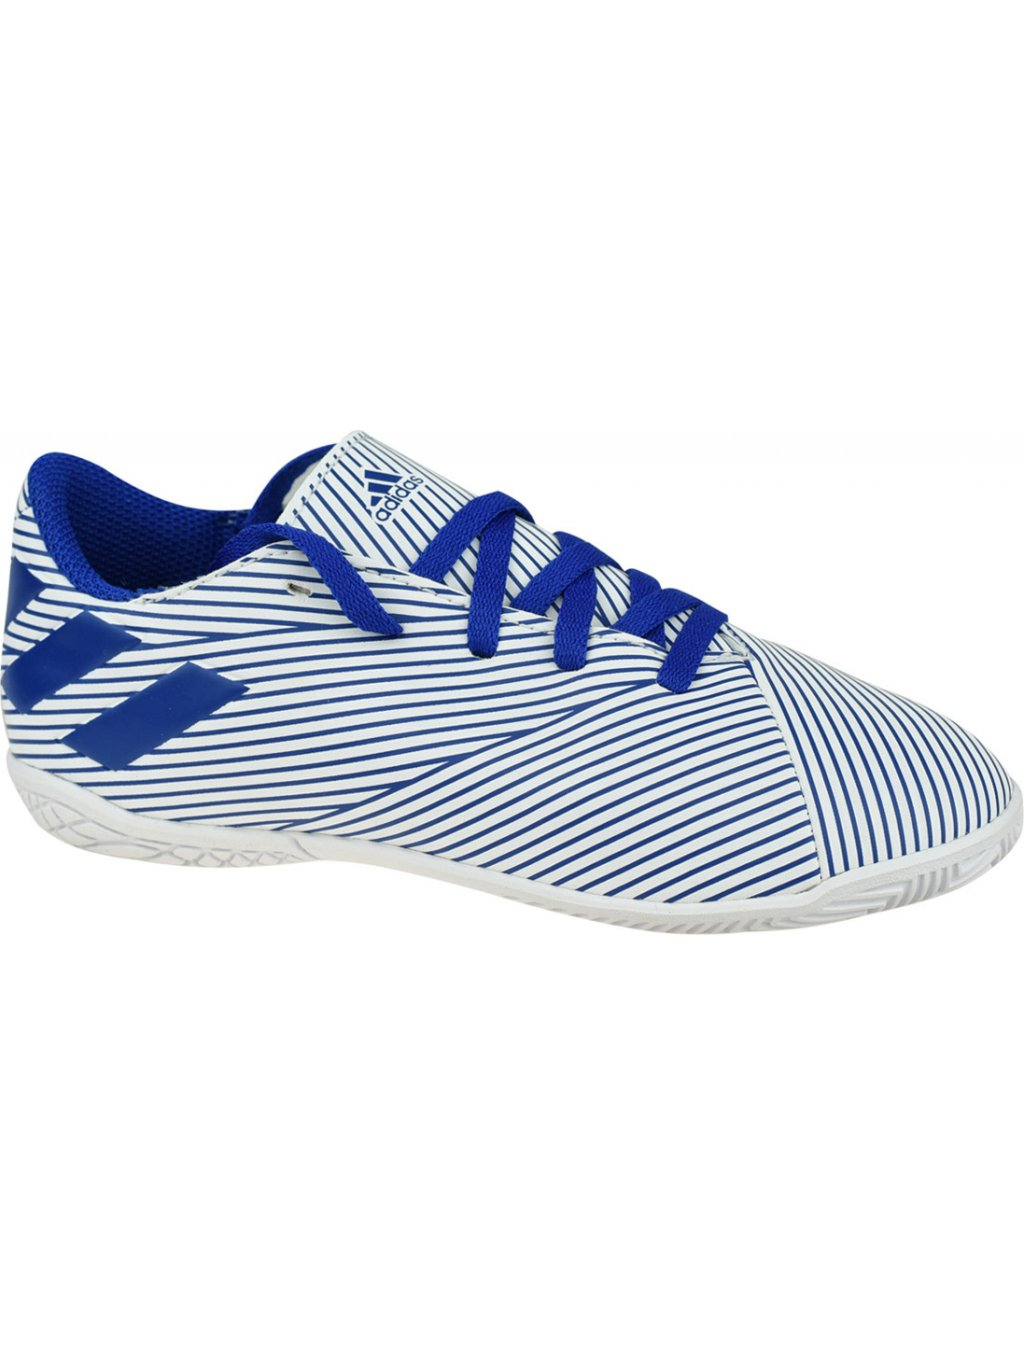 ADIDAS NEMEZIZ 19.4 IN JR EF1754